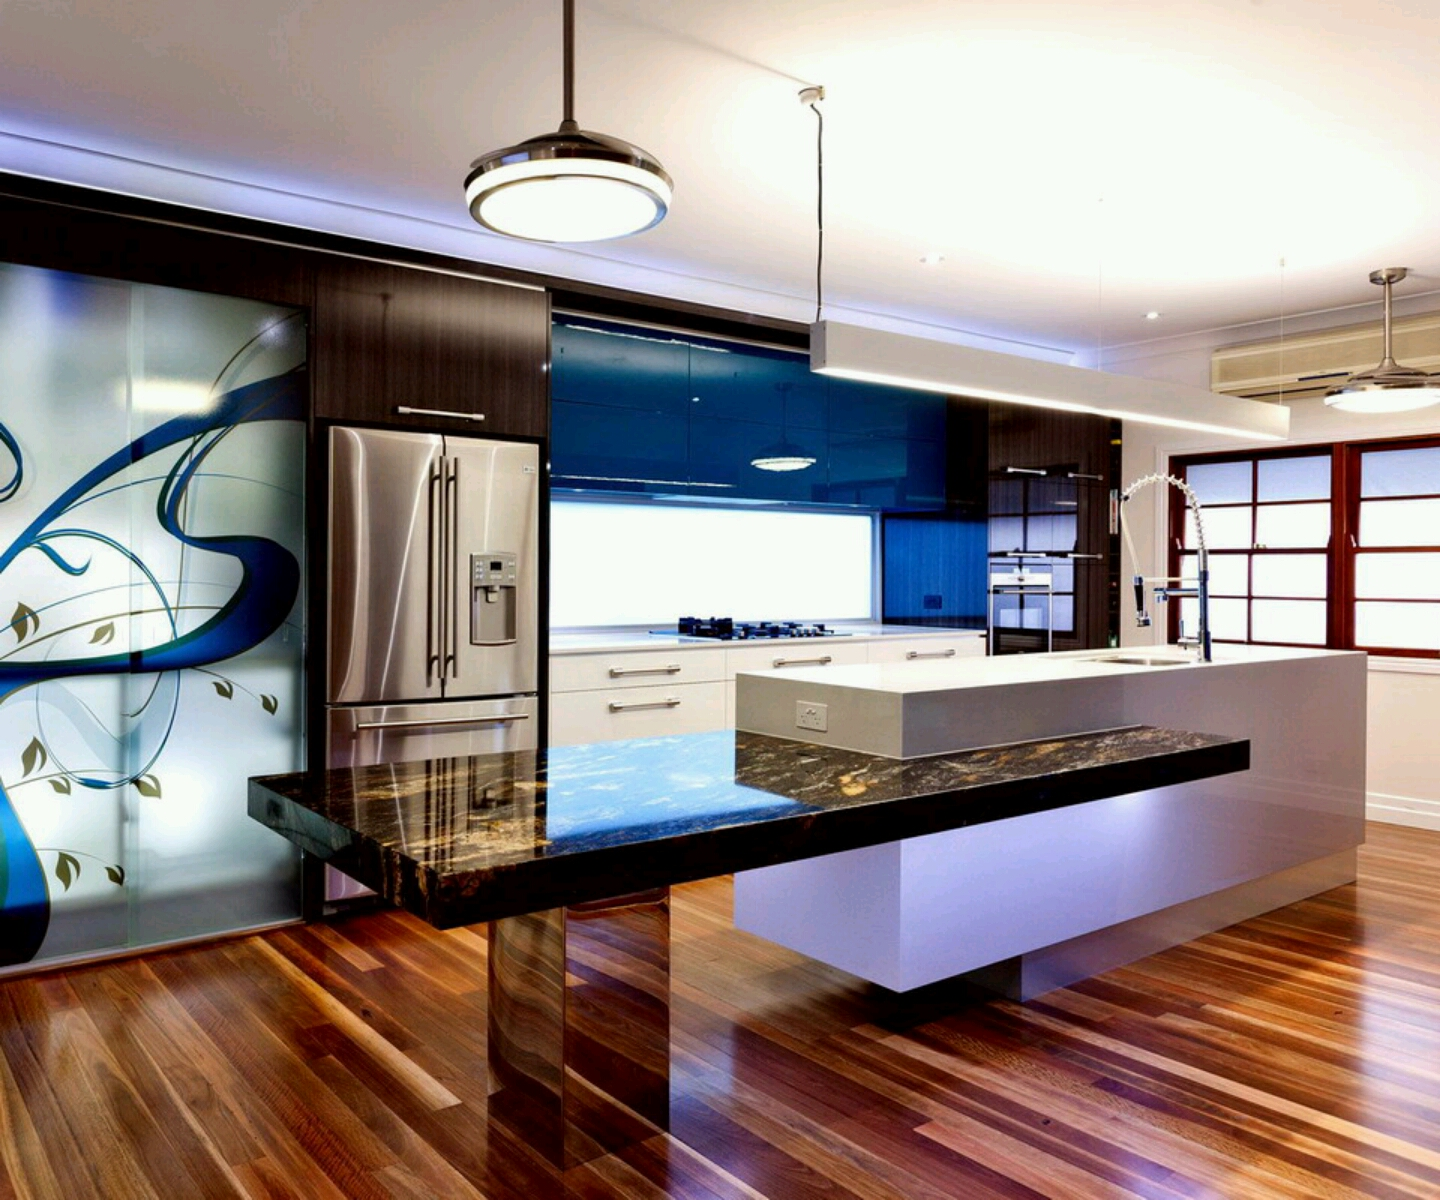 Ultra modern kitchen designs ideas new home designs for Kitchen design ideas pictures